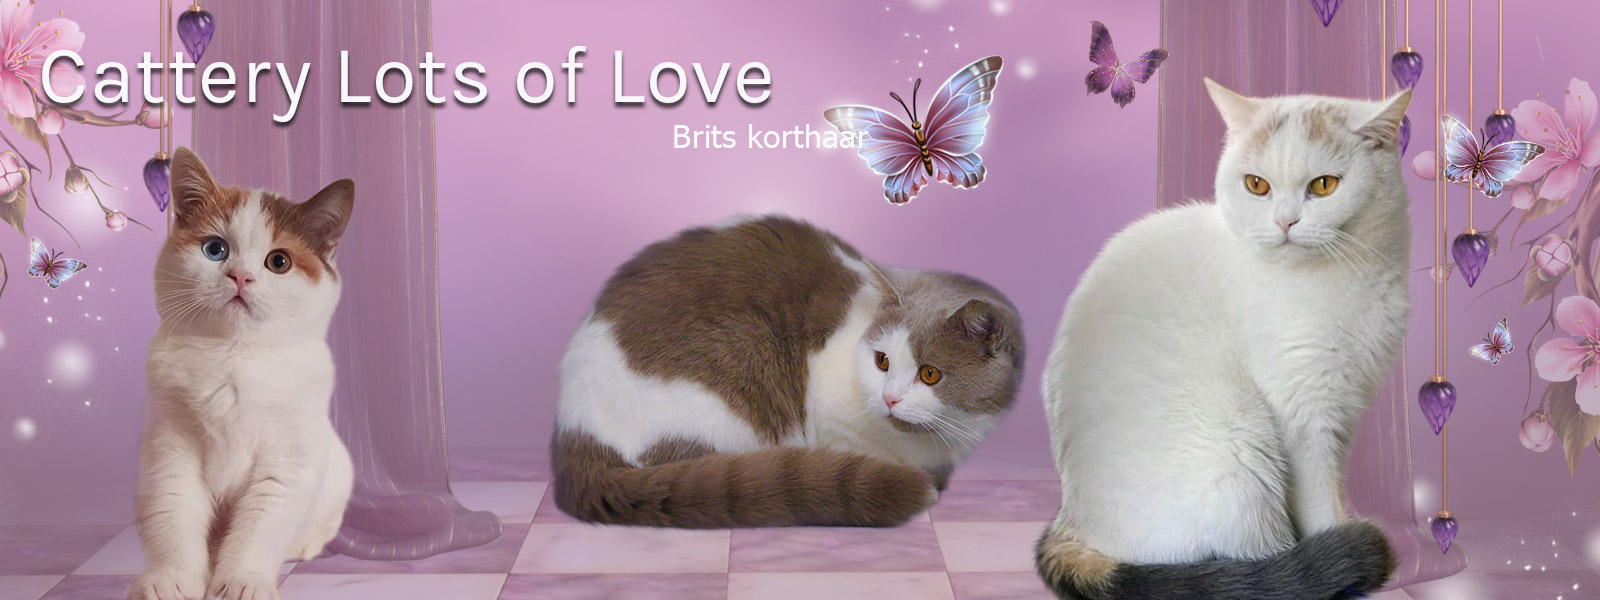 Cattery Lots of Love